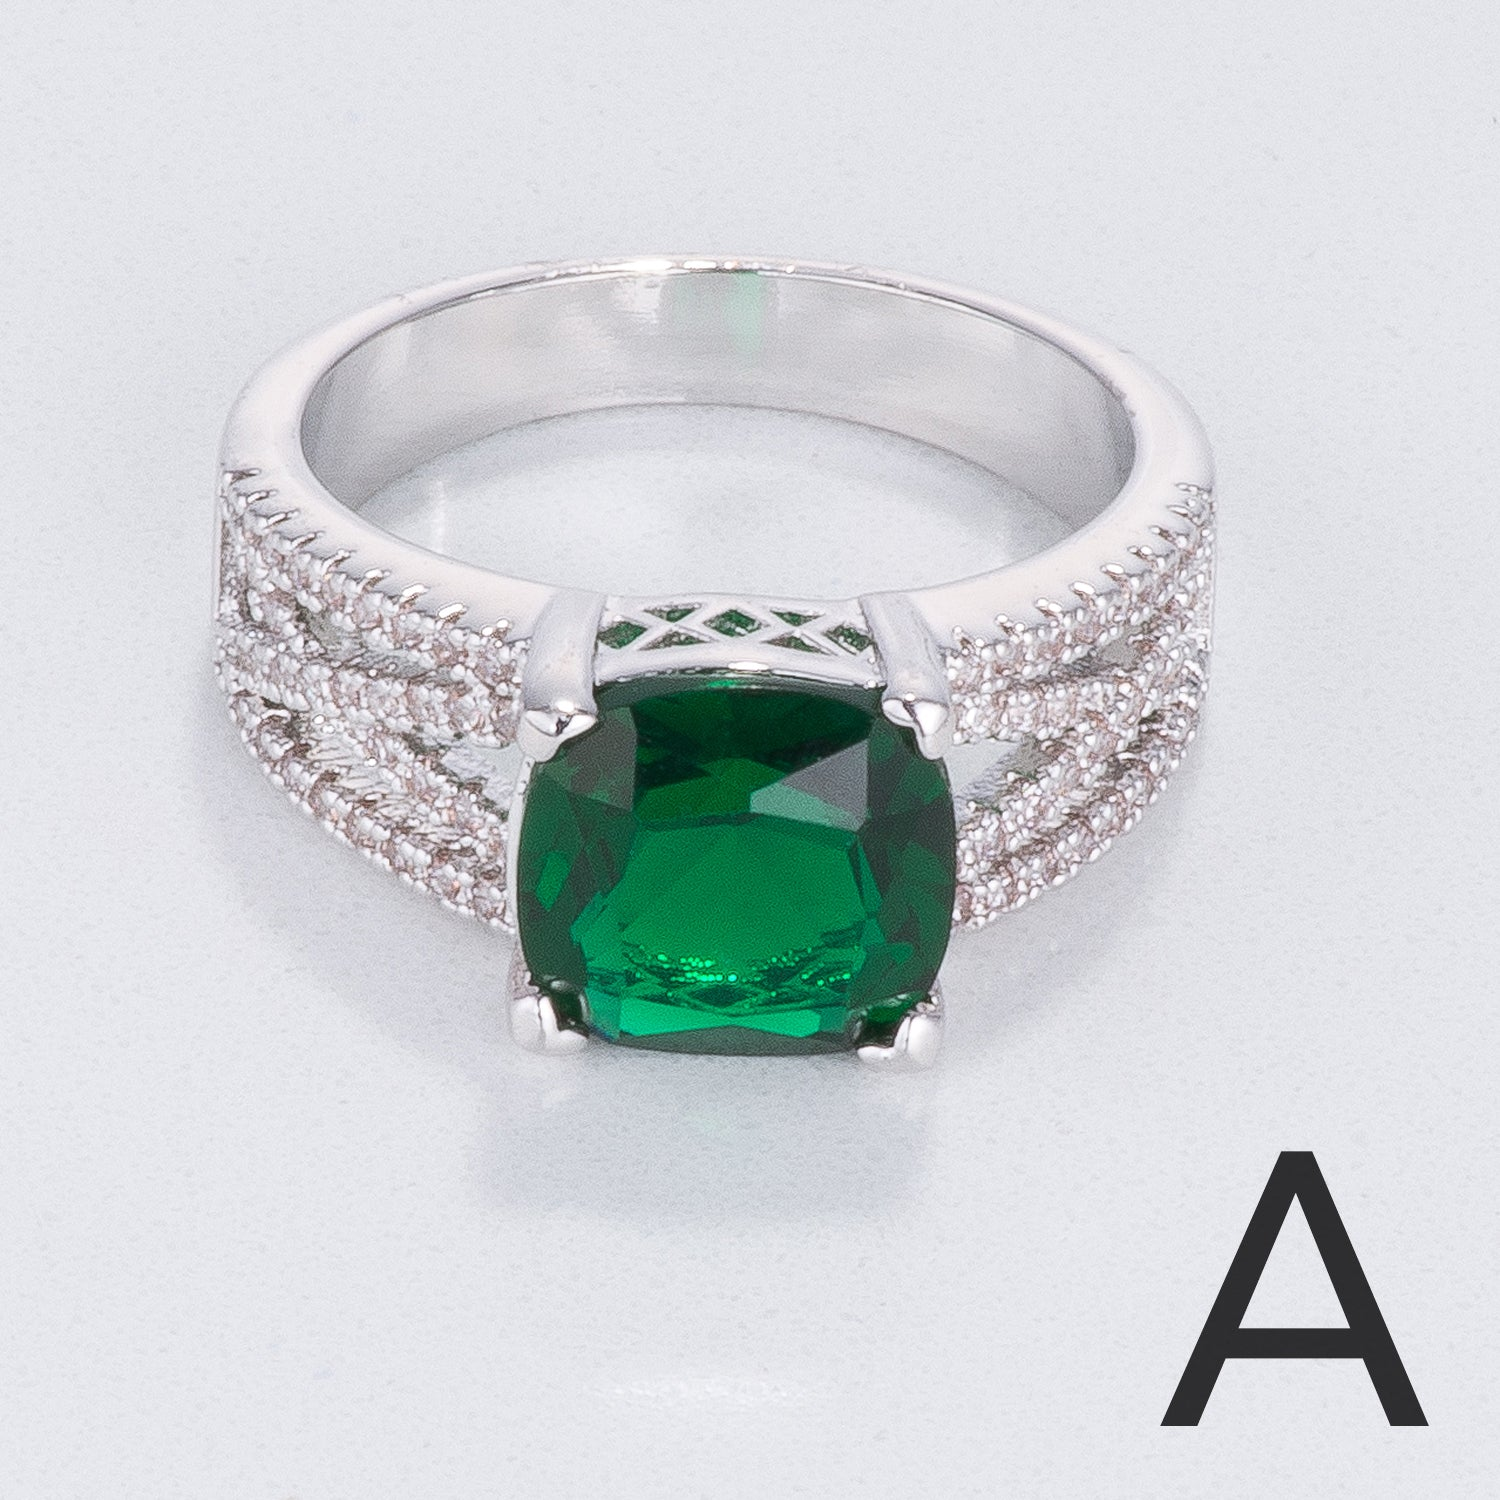 hbz bridal unique fashion beautiful green emerald engagement wedding rings